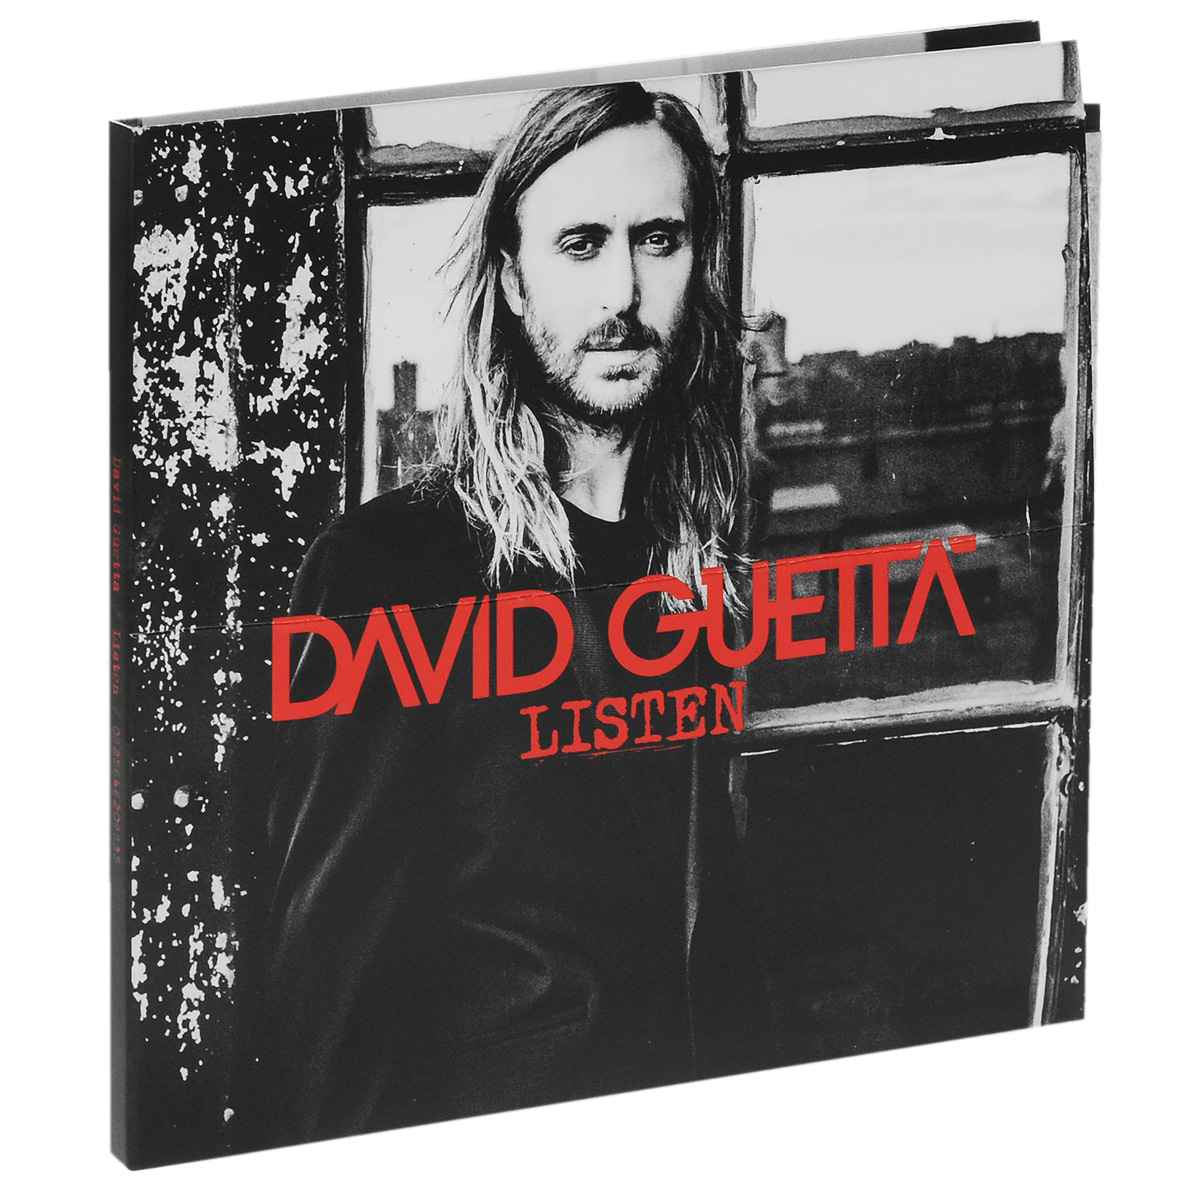 Дэвид Гетта David Guetta. Listen. Limited Edition (2 CD) дэвид гетта самуэль денисон мартин david guetta feat sam martin dangerous remix ep